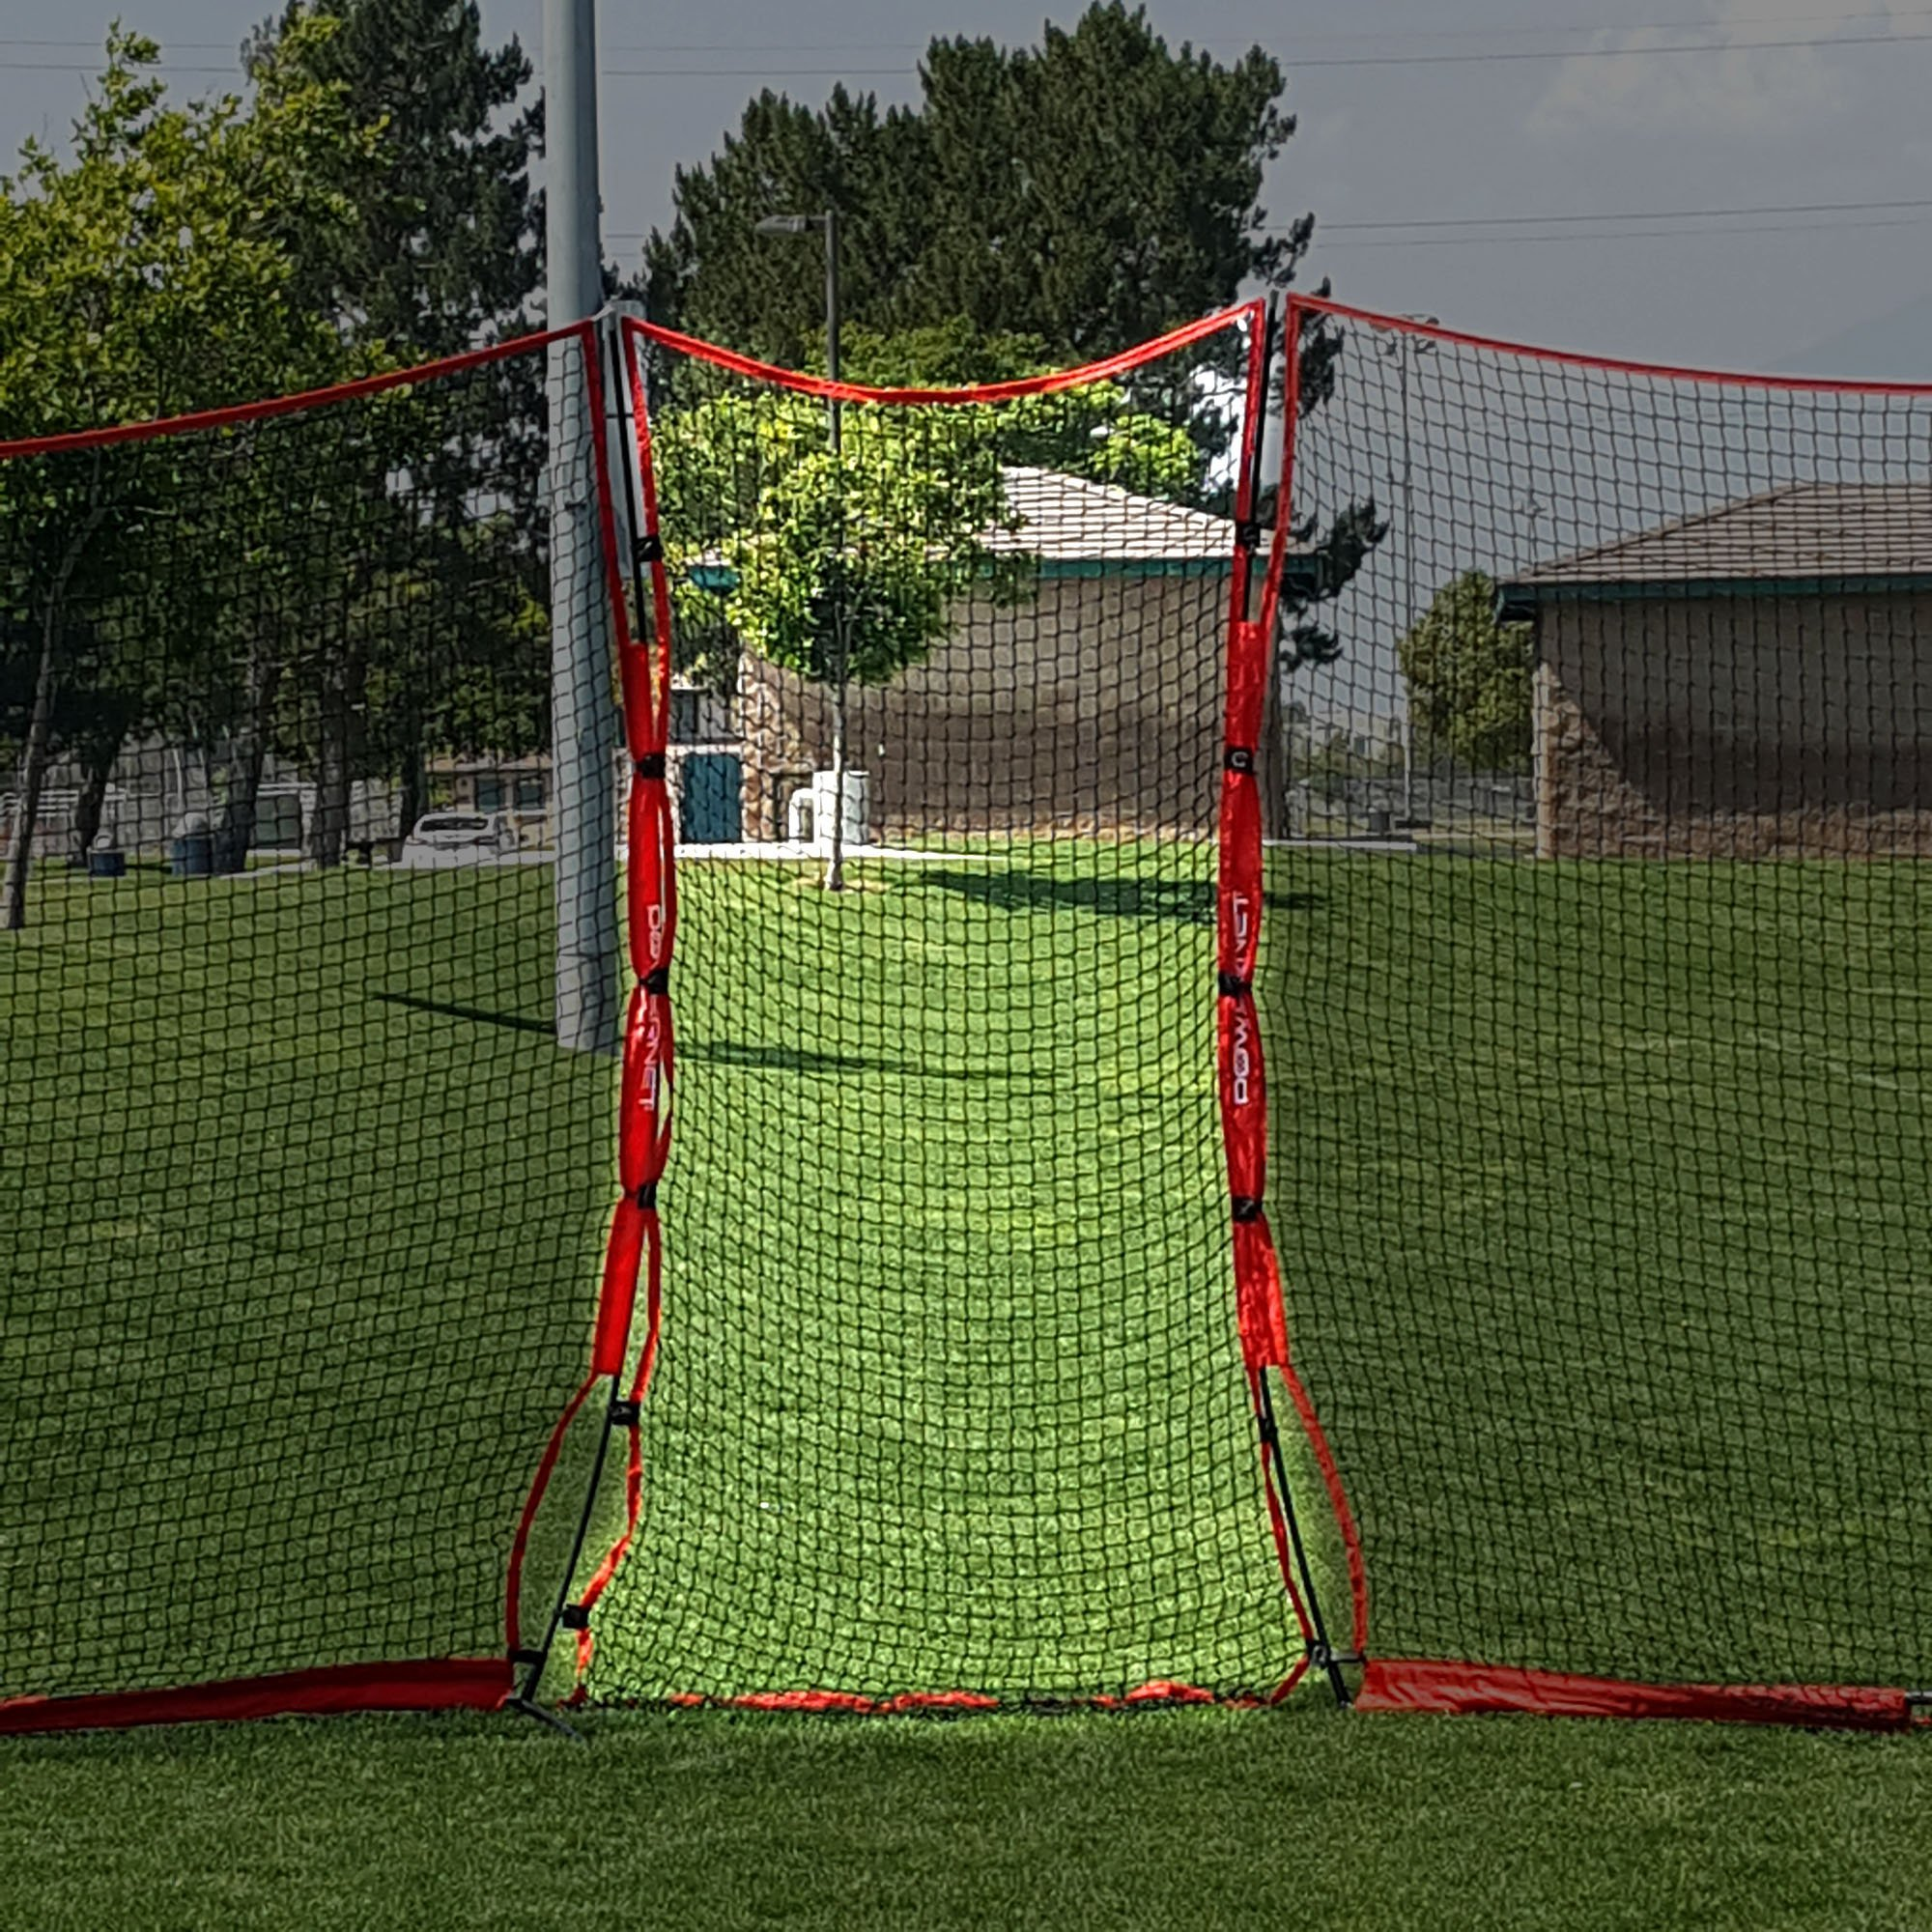 PowerNet Connector for 12X9 Barrier Nets (4.5x9 EXTENDER NET ONLY) | for Baseball and Lacrosse | 40 SQFT of Additional Protection | Safety Backstop | Portable EZ Setup | Durable Knotless Netting